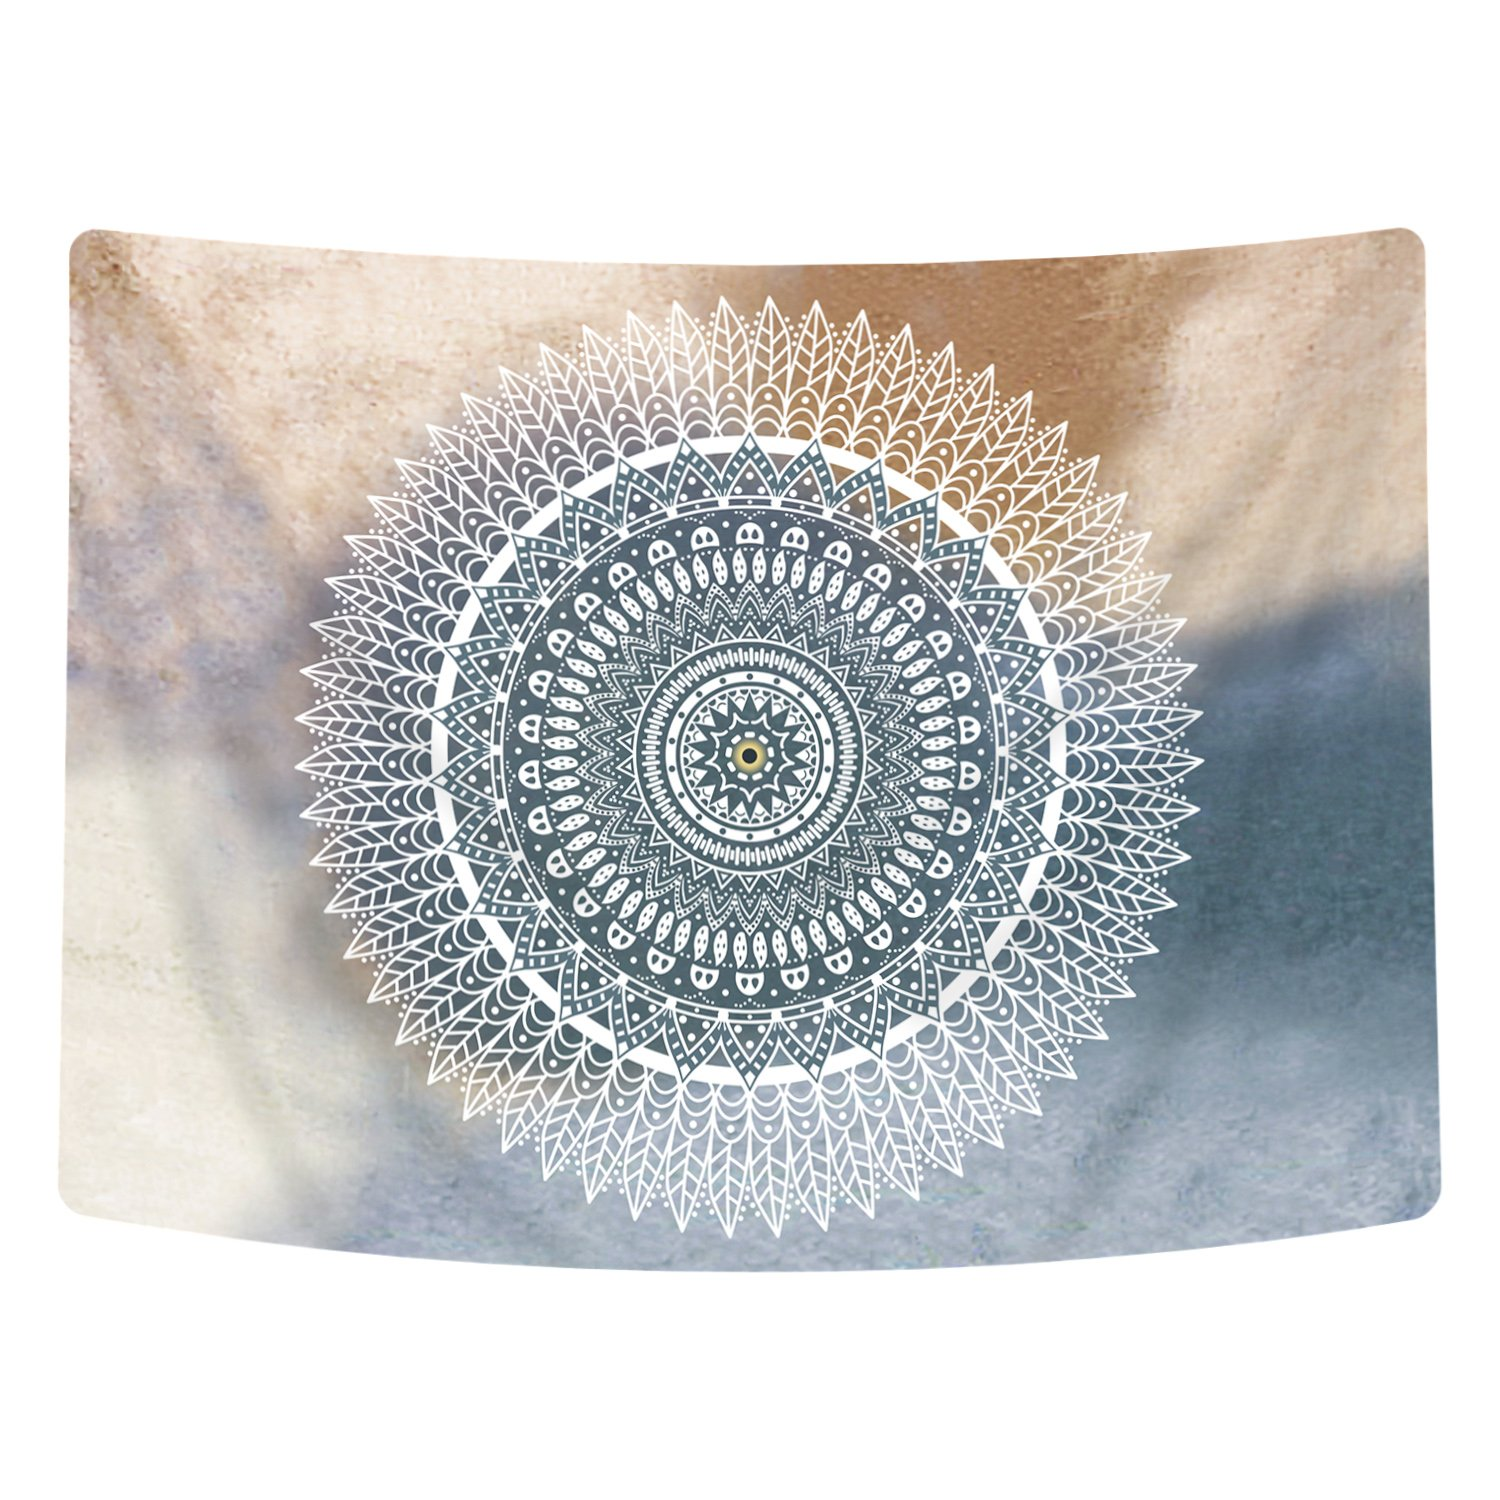 Sunm boutique India Mandala Tapestry Wall Hanging Wall Décor Picnic Blanket Tapestry Bedding Dorm Tapestry (Multicolored, 59.1'' X 59.1'')